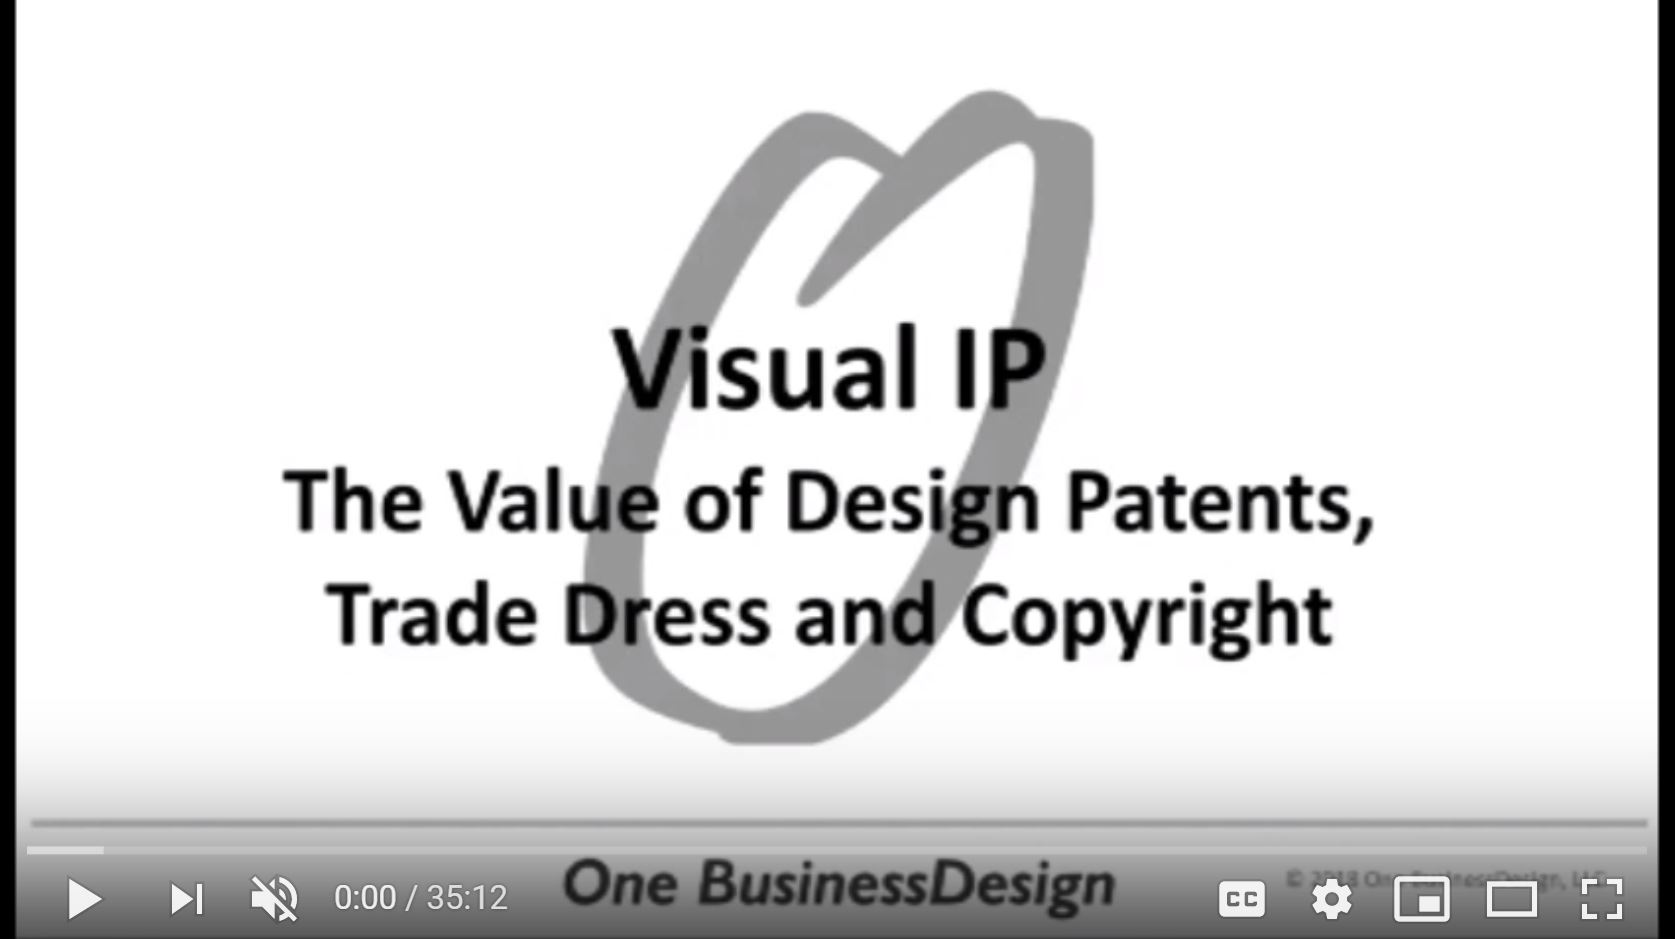 Visual IP - The Value of Design Patents, Trade Dress and Copyrights